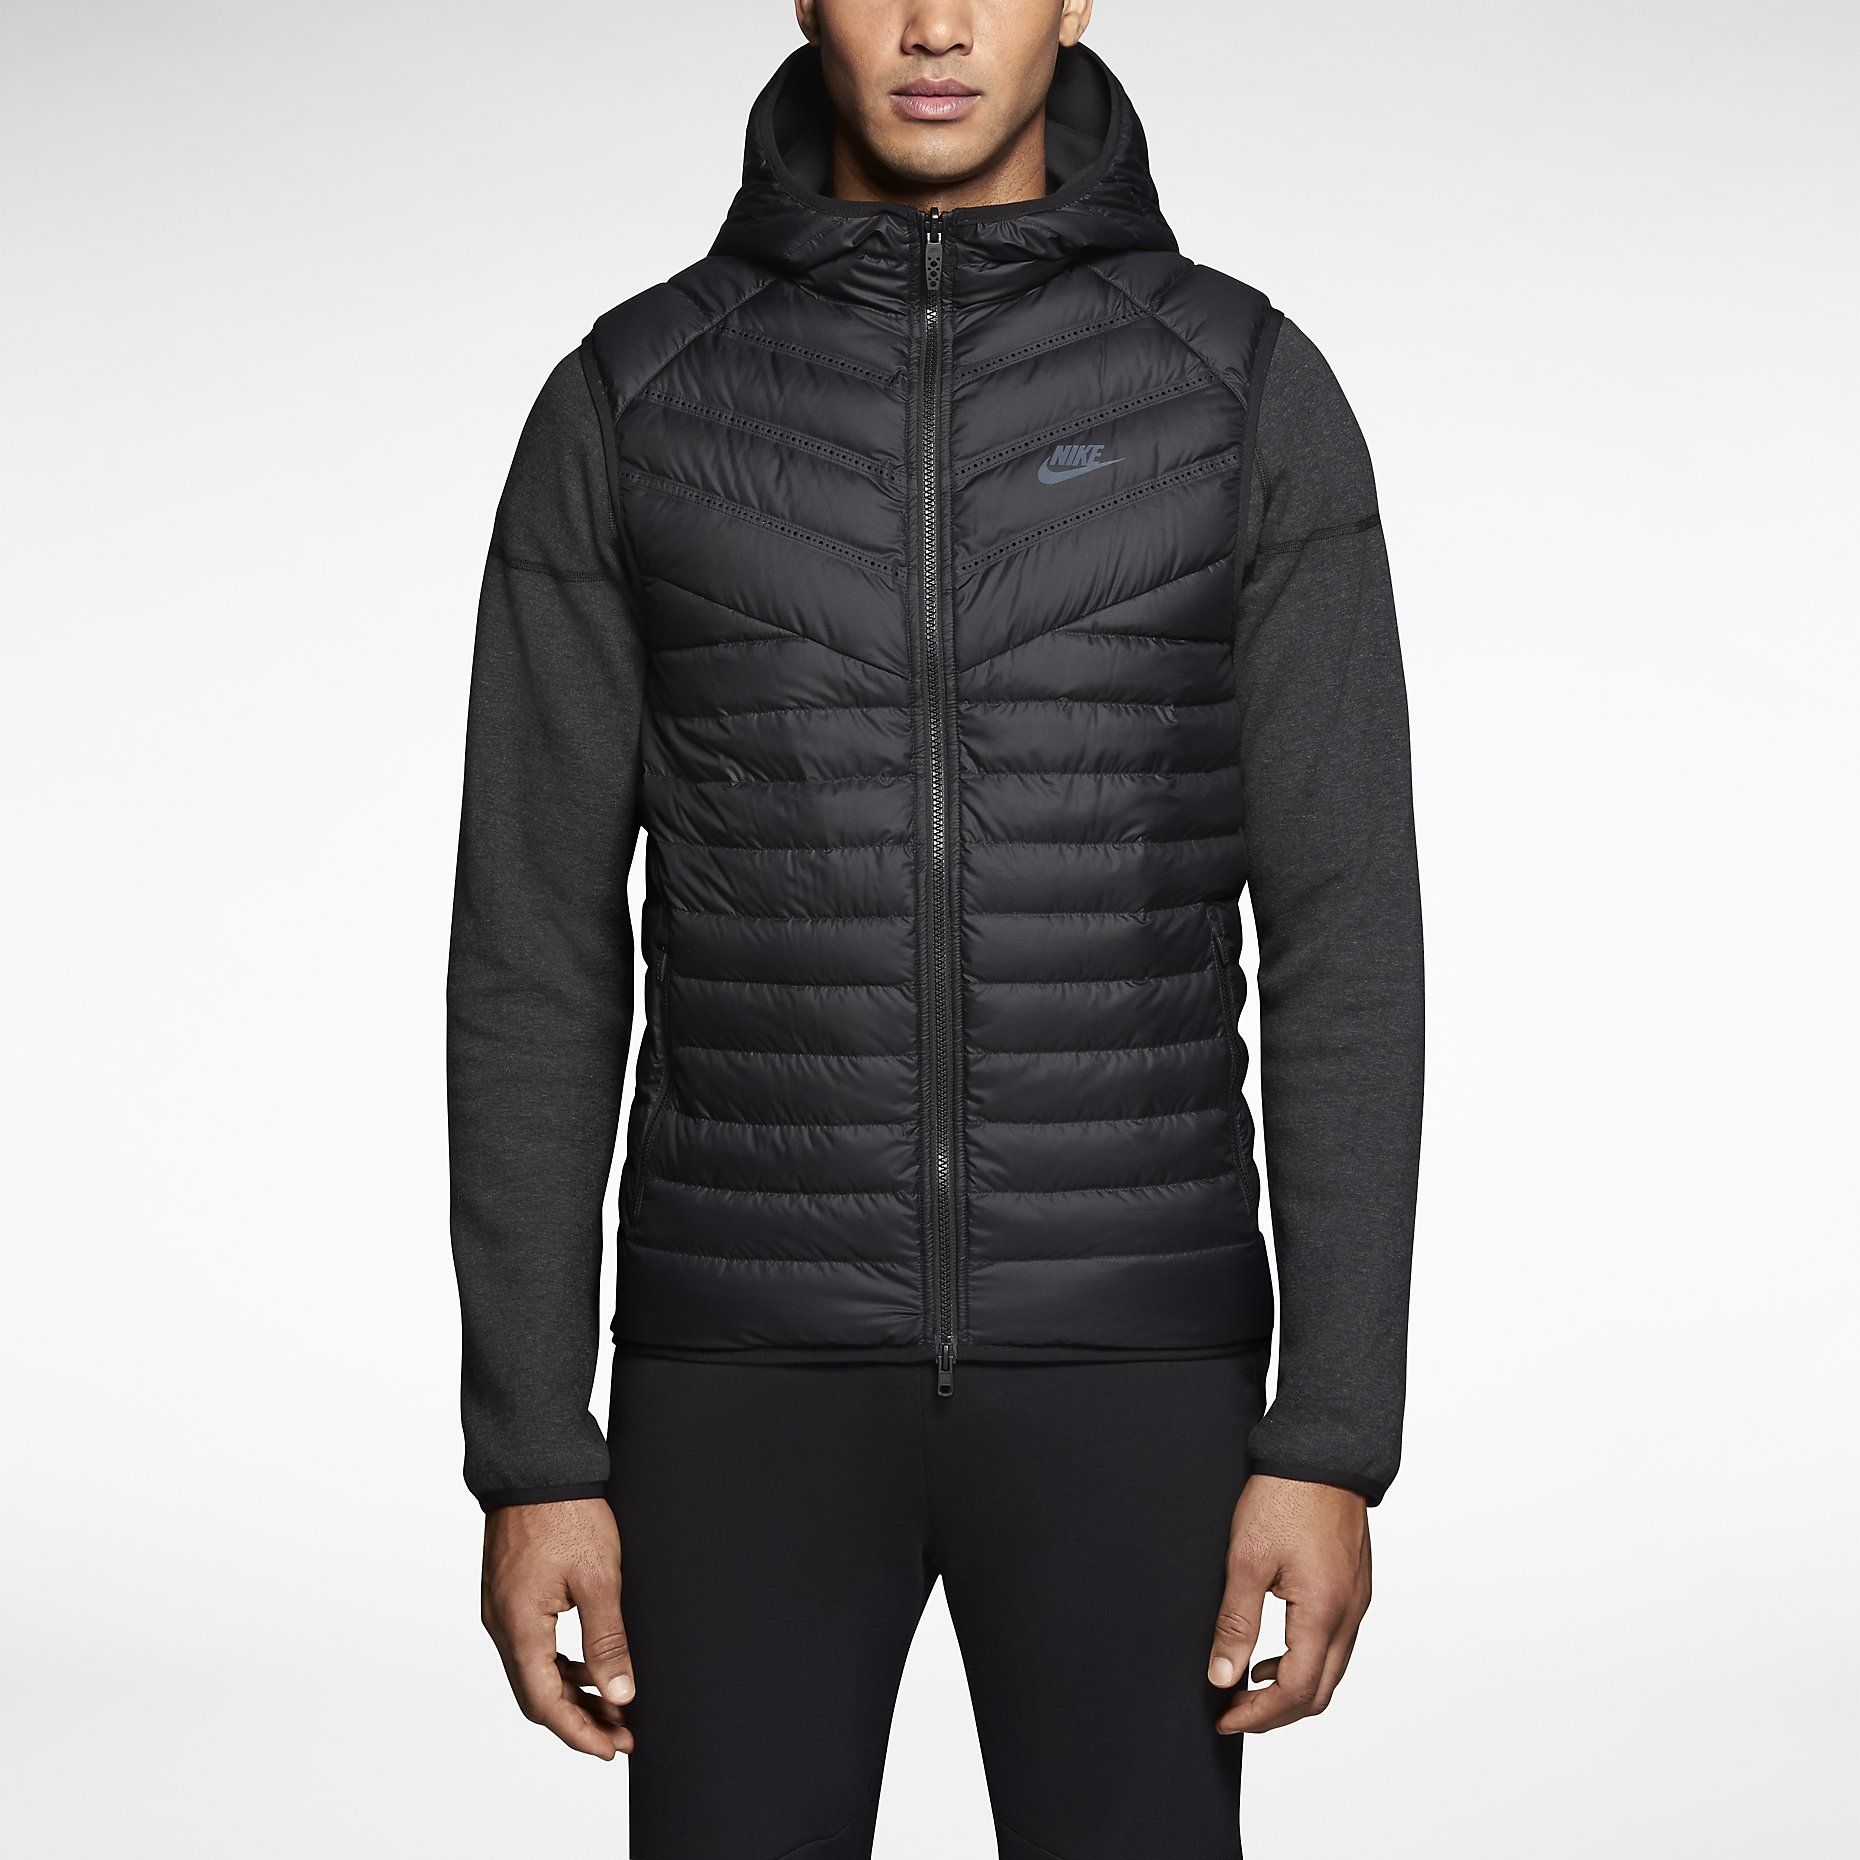 nike tech fleece aeroloft windrunner men 39 s jacket nike store men 39 s style pinterest nike. Black Bedroom Furniture Sets. Home Design Ideas